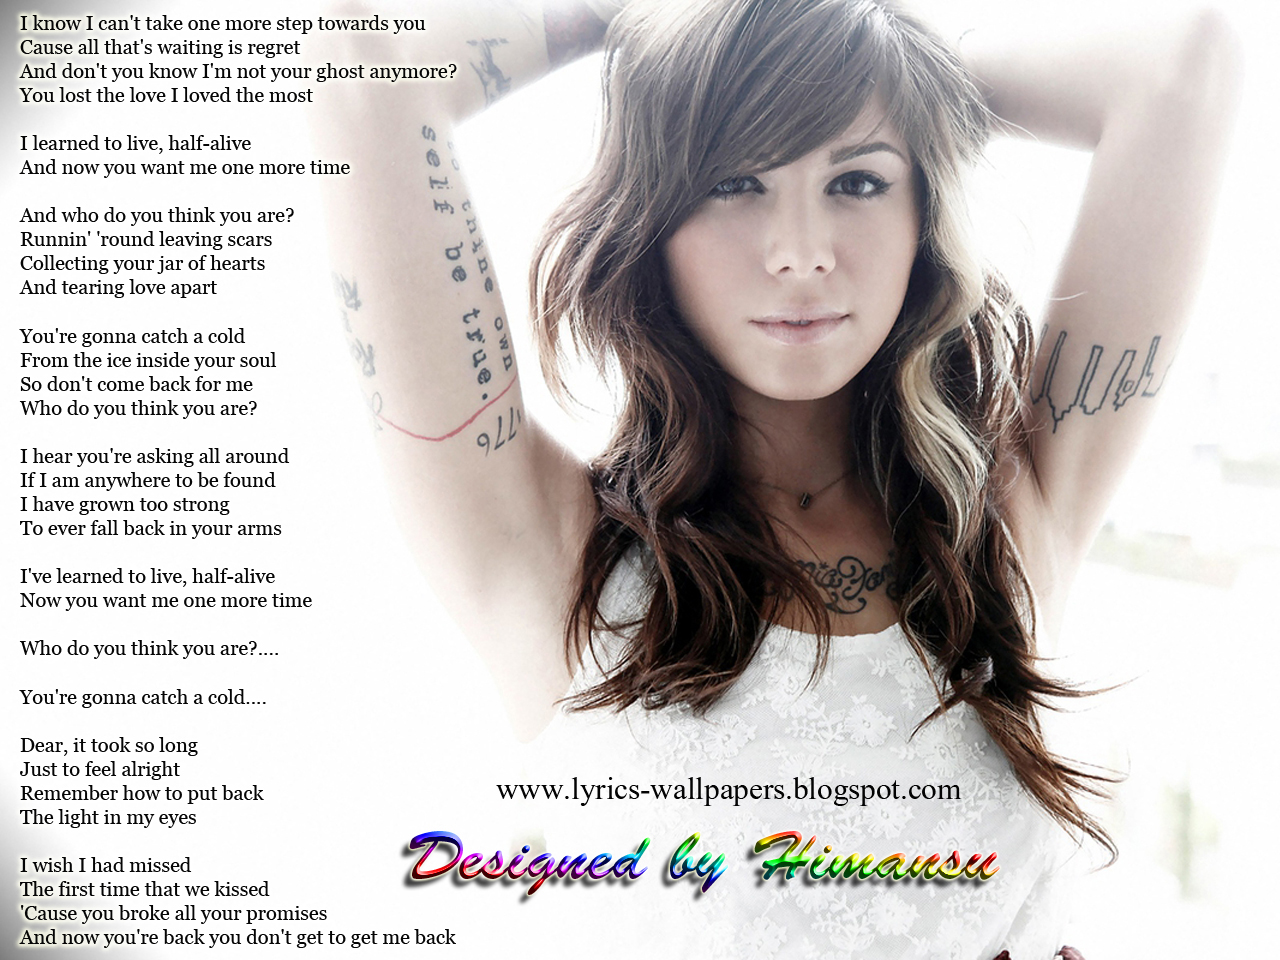 christina perri 2008 - photo #15